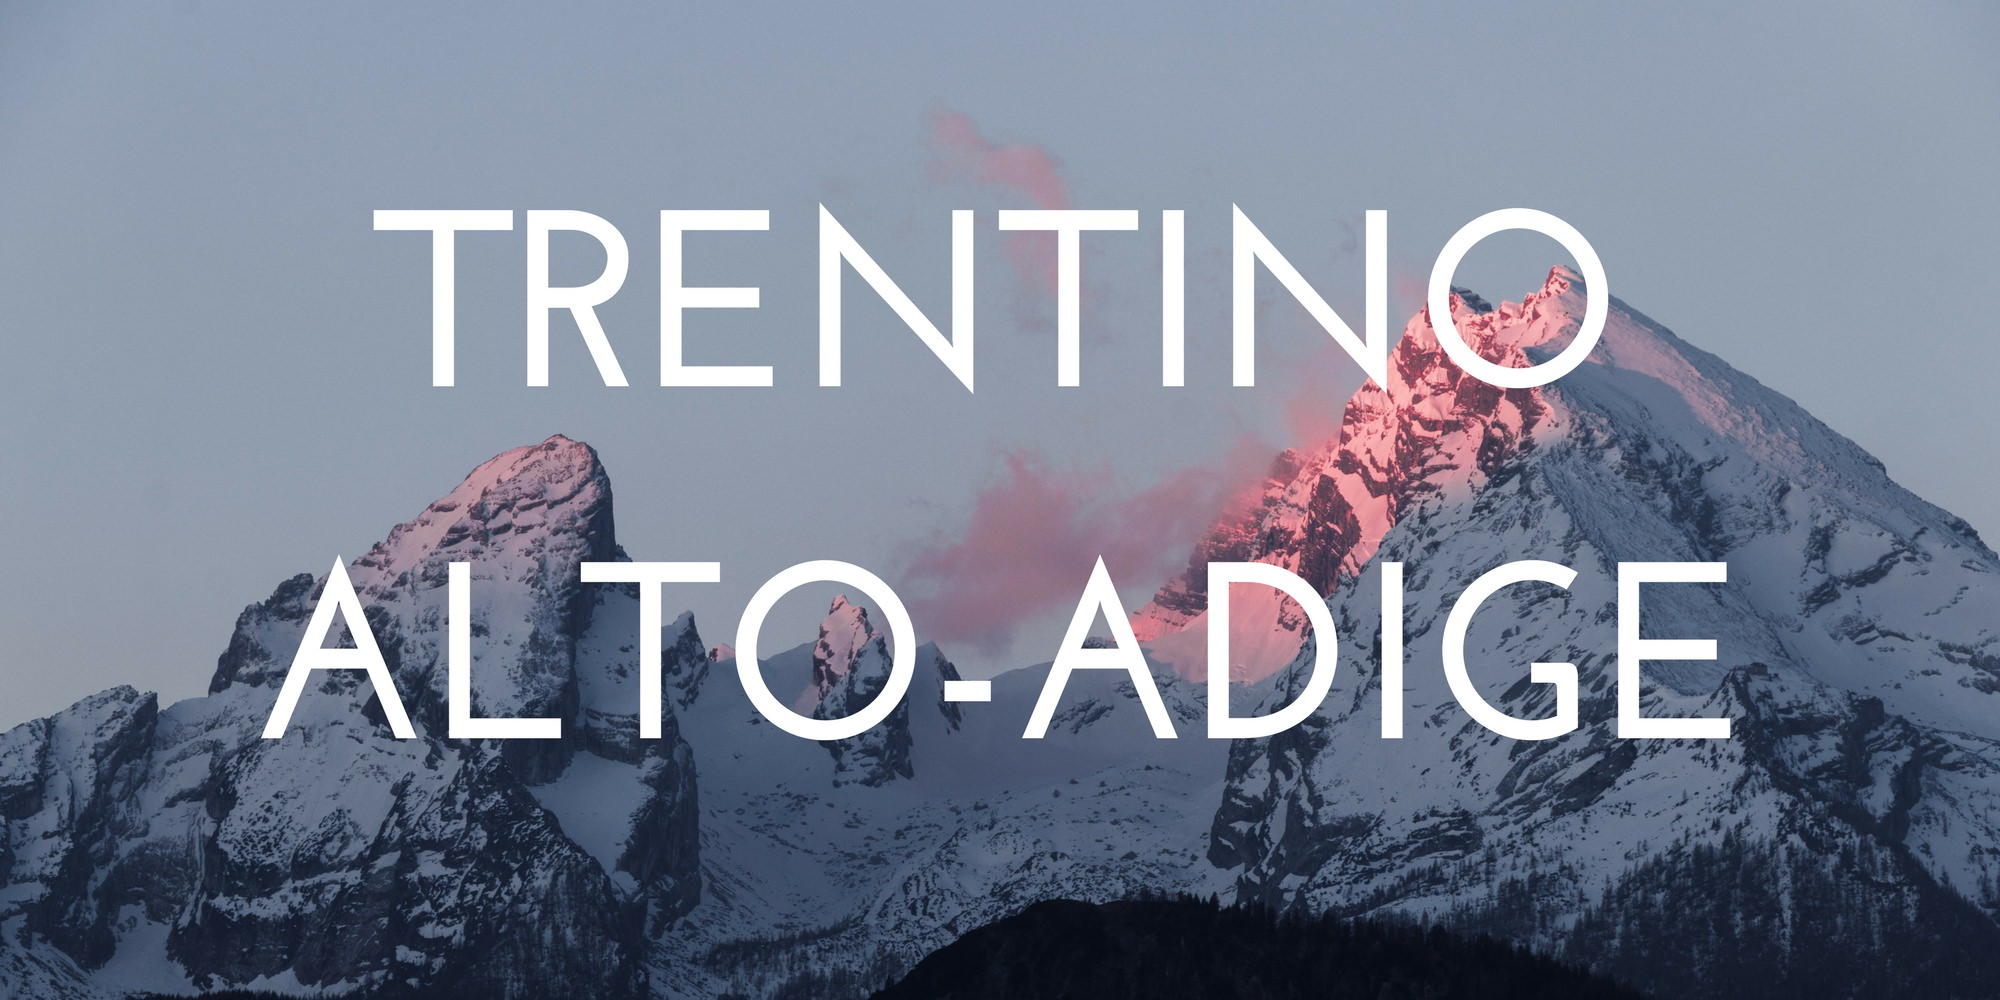 Trentino - Authentic Traveling - Header